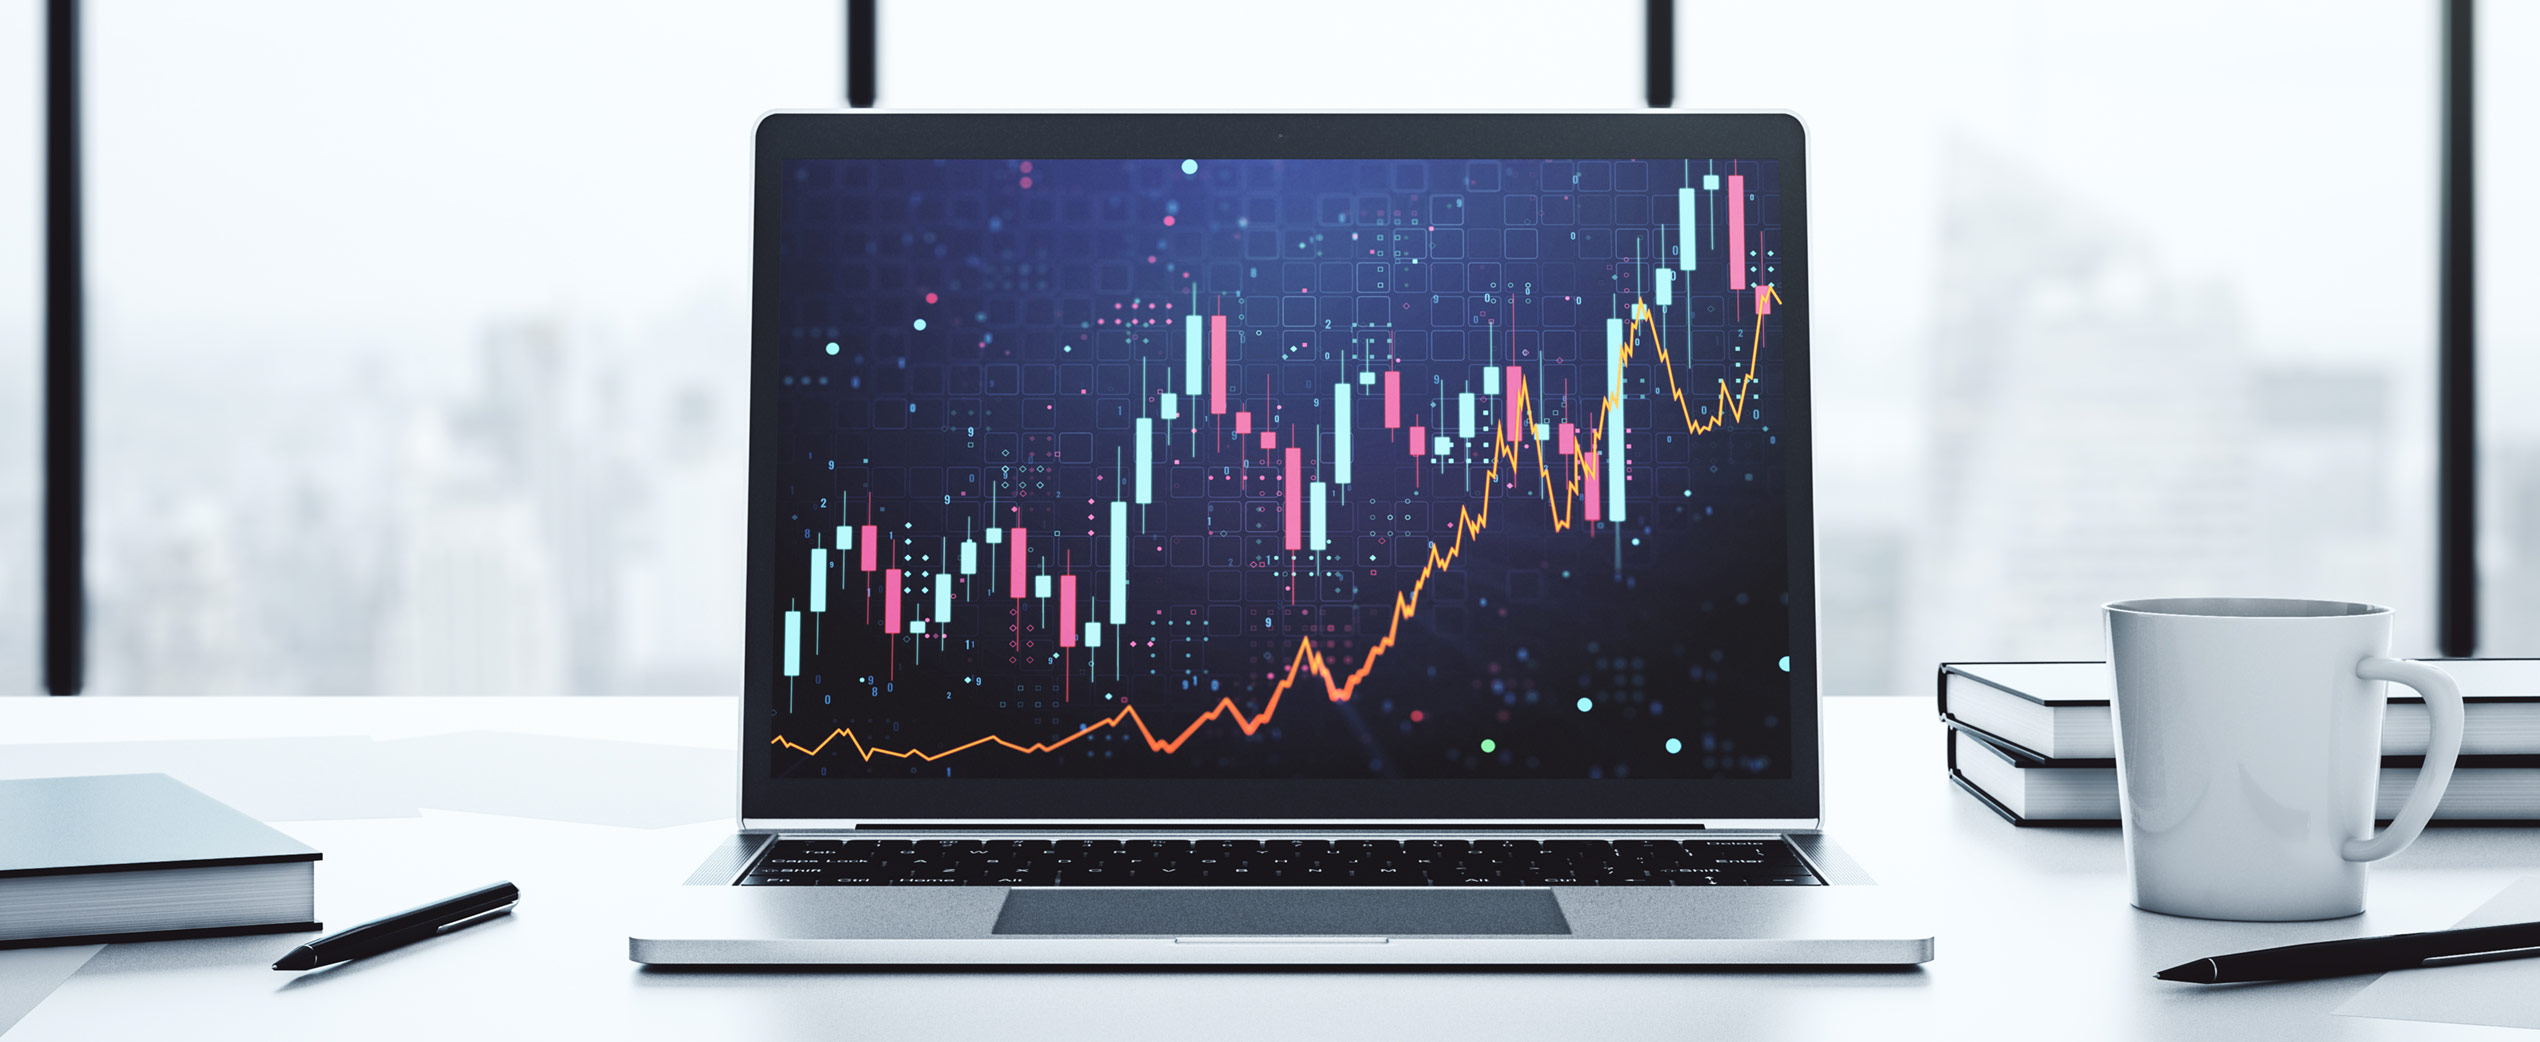 Laptop showing financial charts.